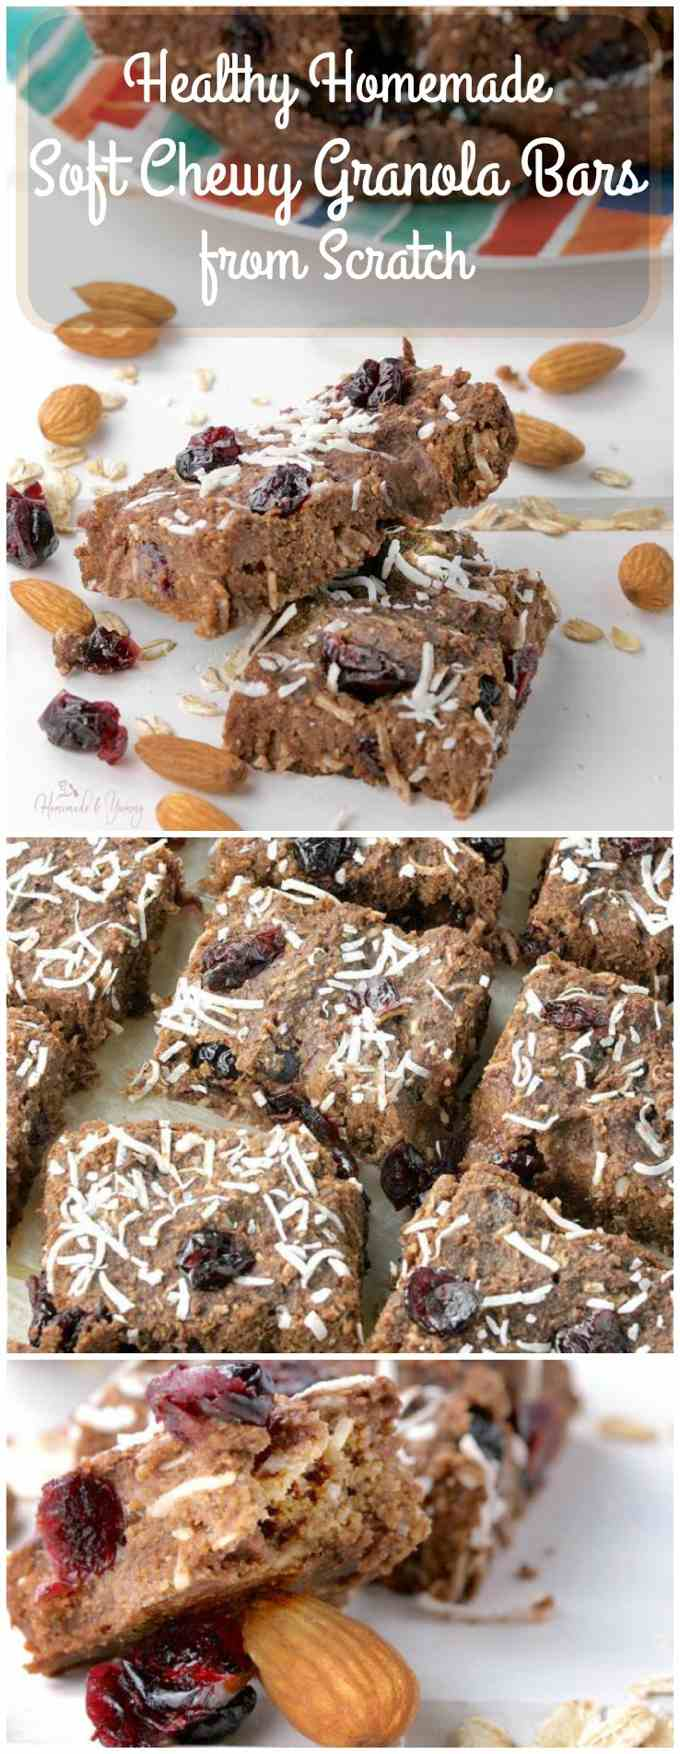 Healthy Homemade Soft Chewy Granola Bars from Scratch long pin image.